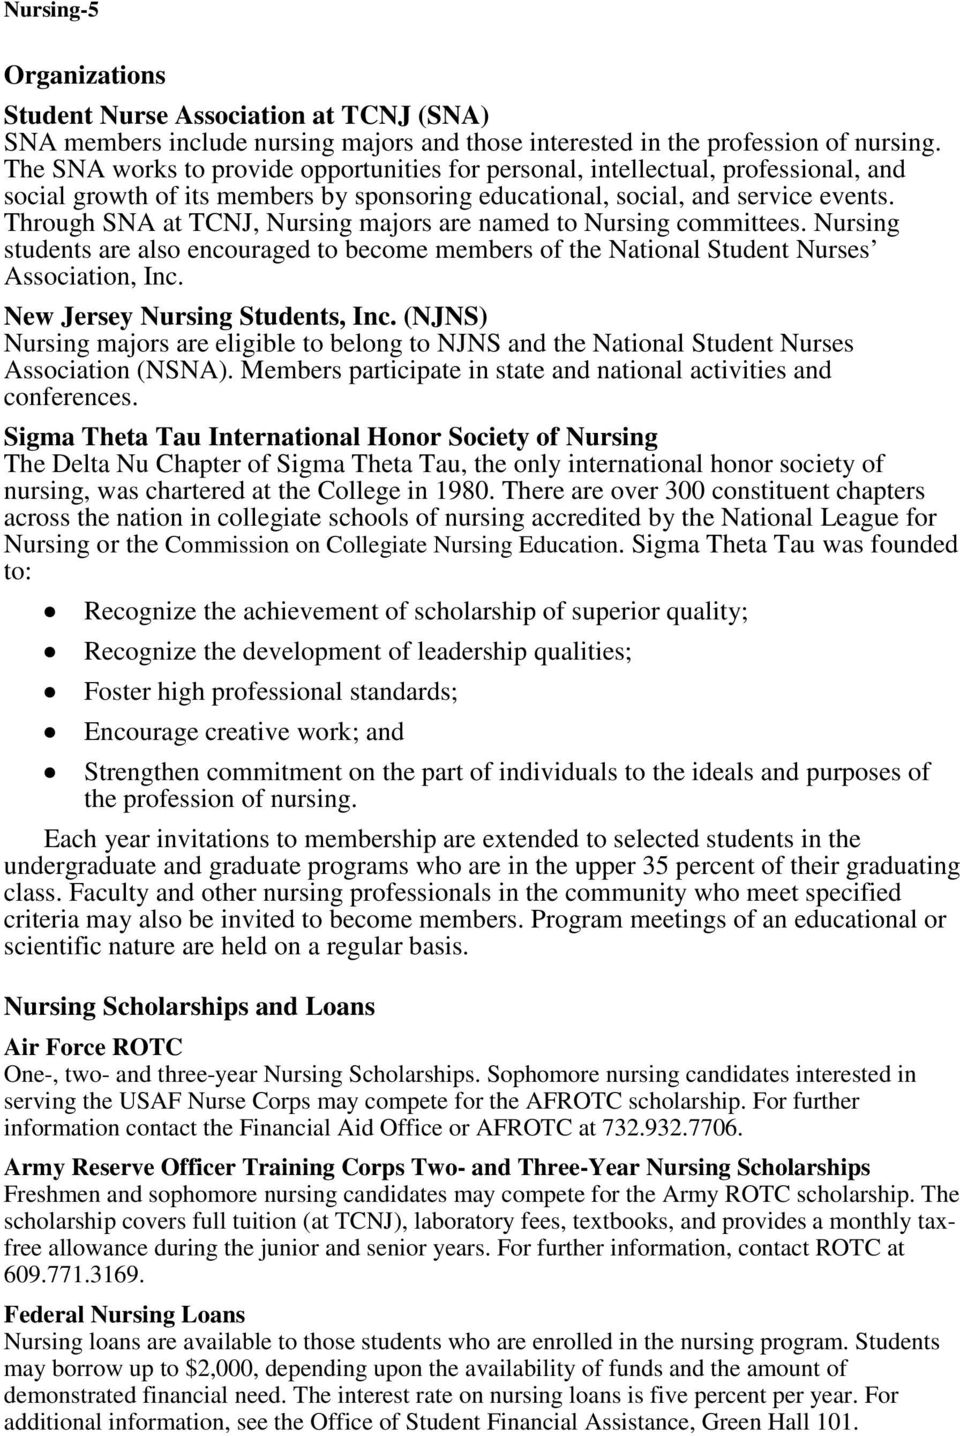 Through SNA at TCNJ, Nursing majors are named to Nursing committees. Nursing students are also encouraged to become members of the National Student Nurses Association, Inc.